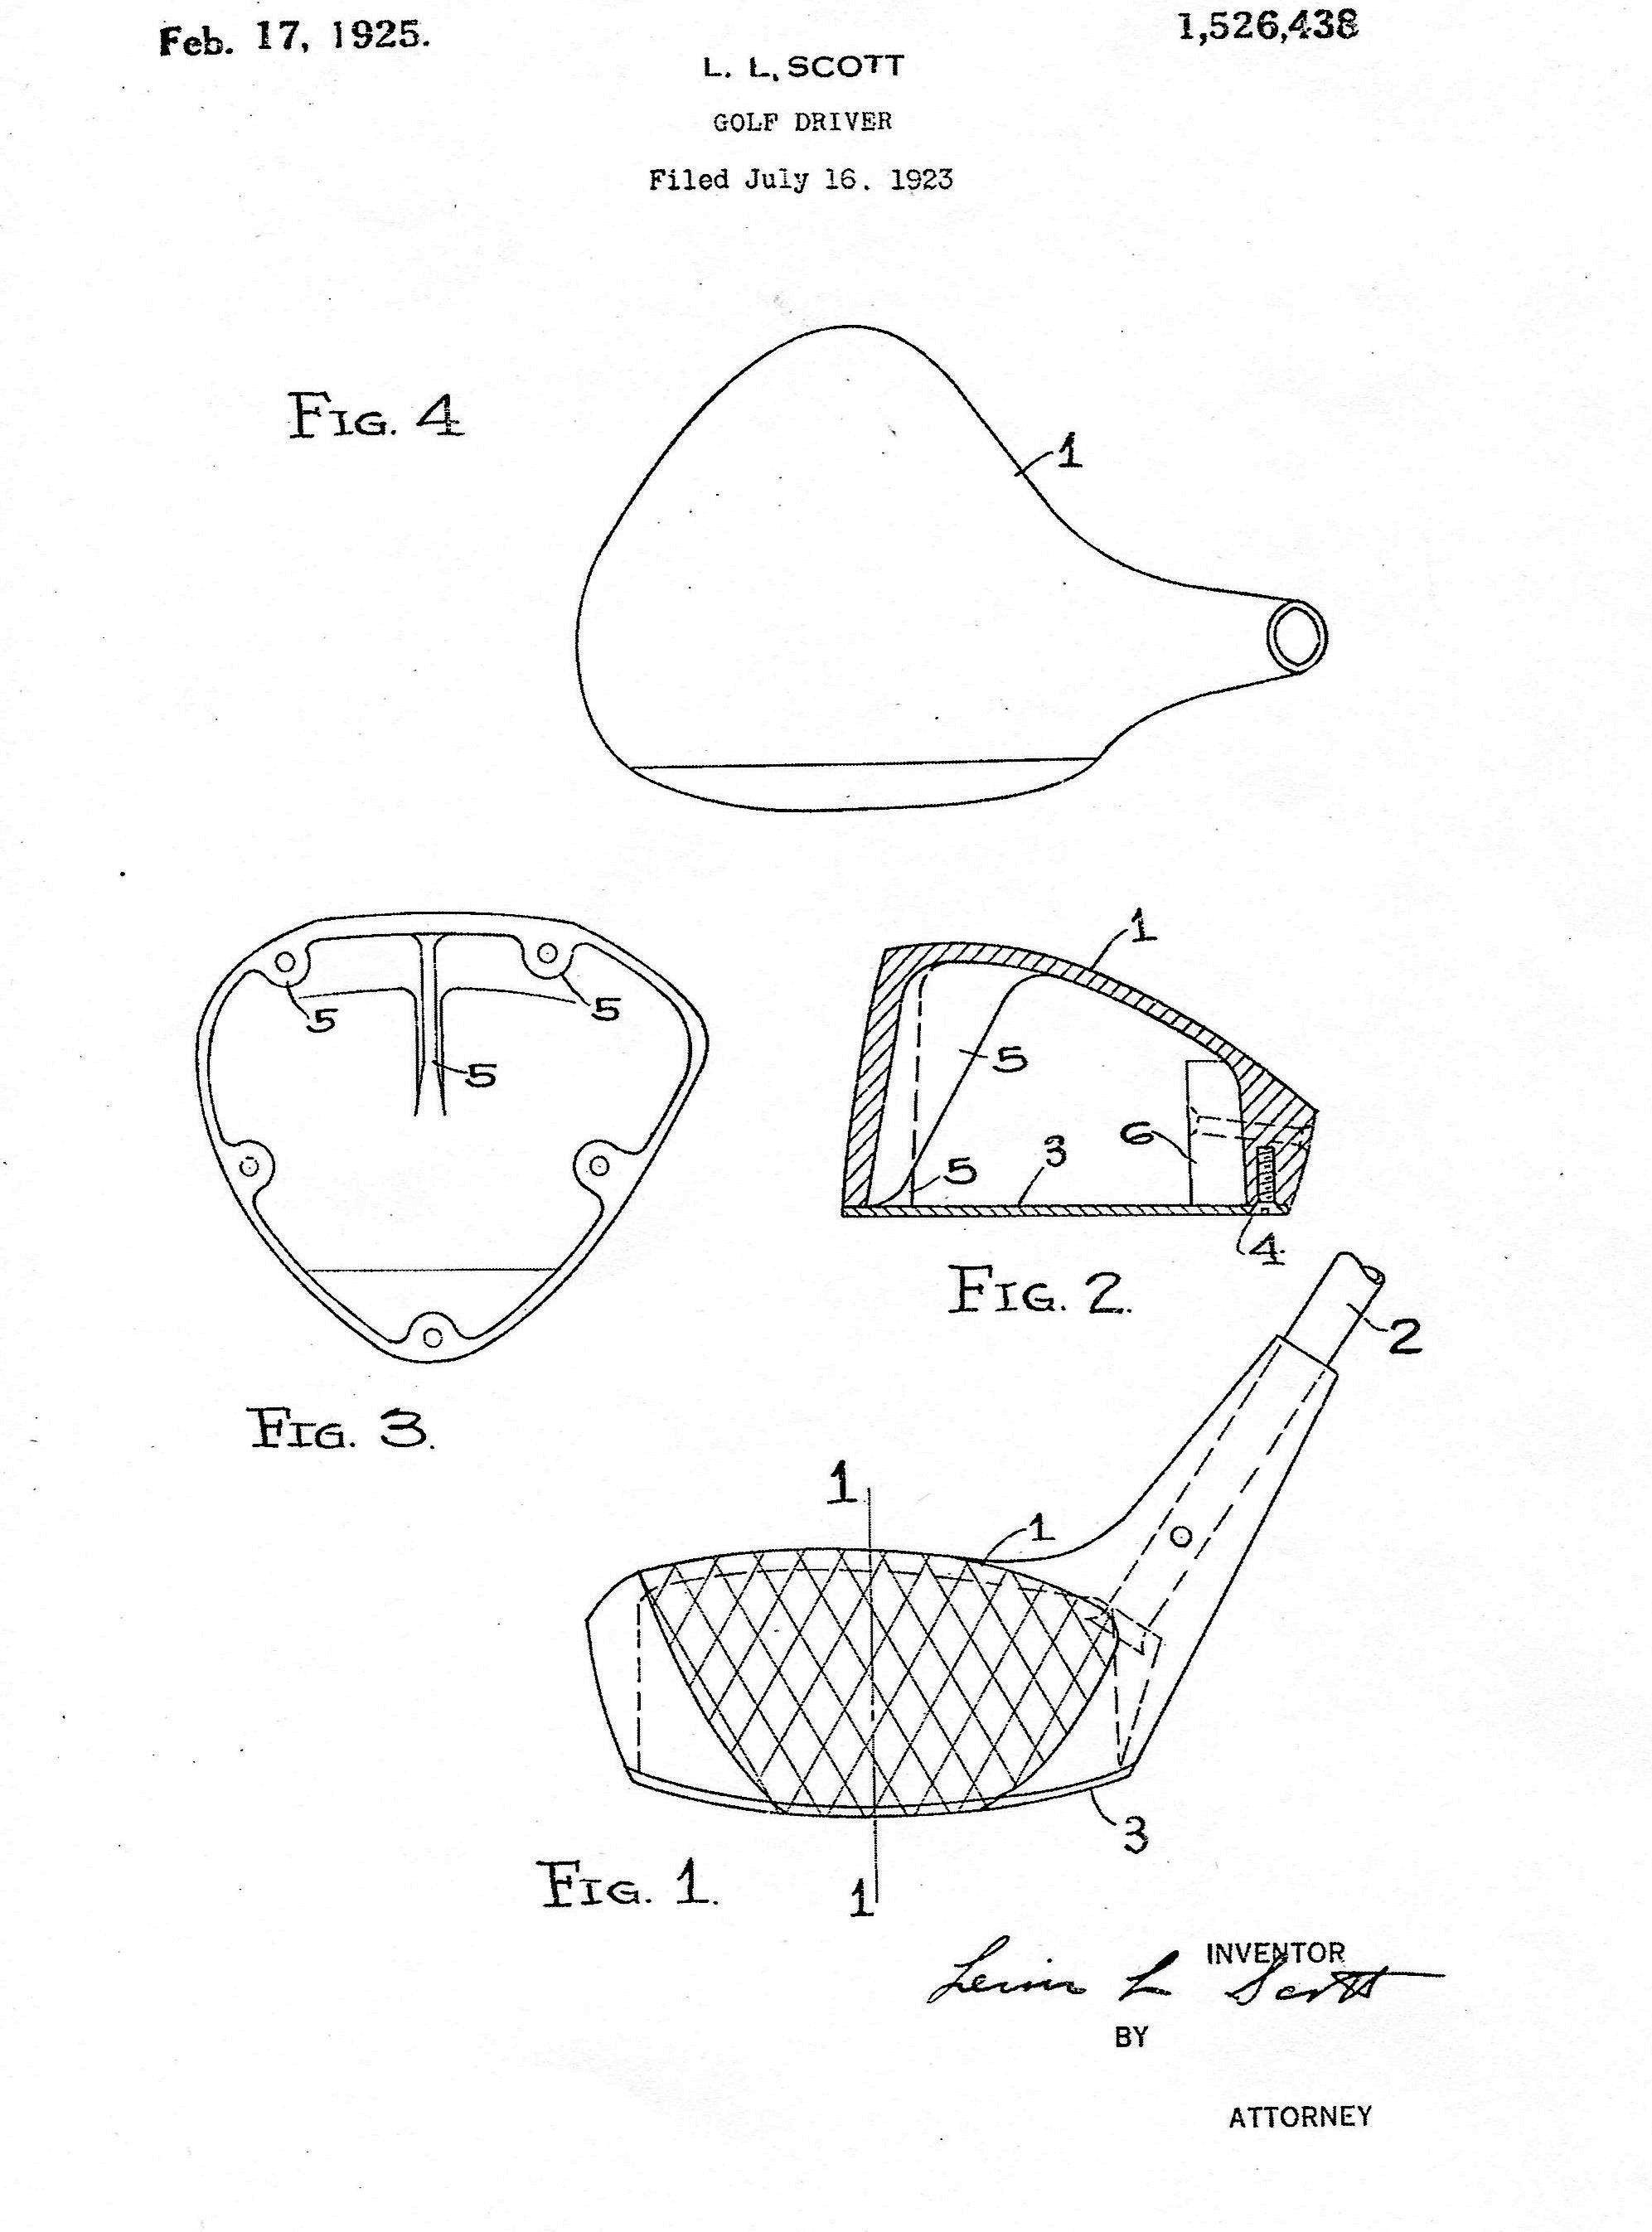 A copy to the patent drawings for the first metal golf